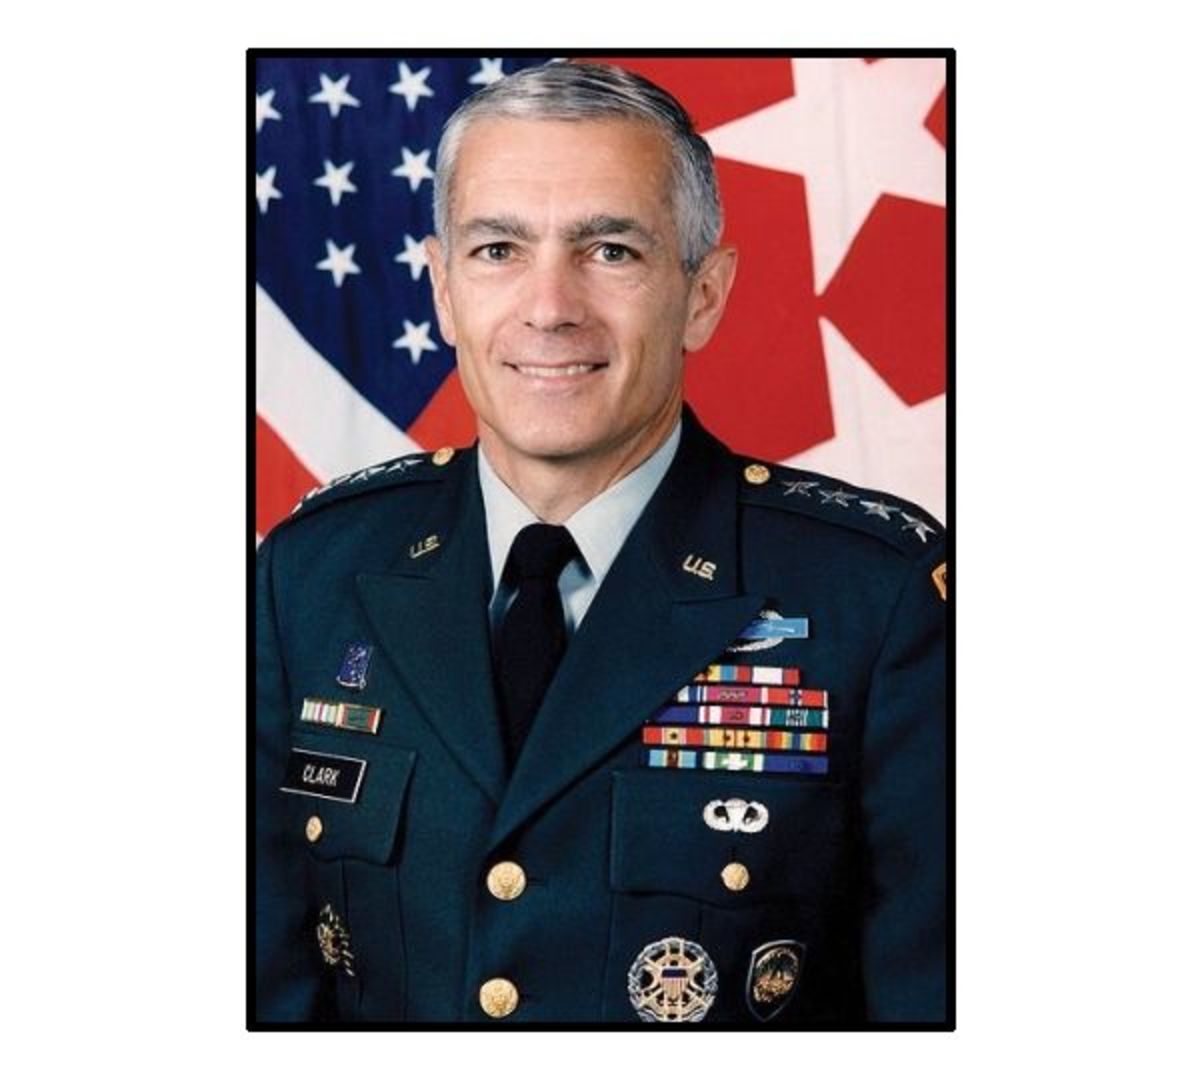 Military photo portrait of U.S. General Wesley Clark